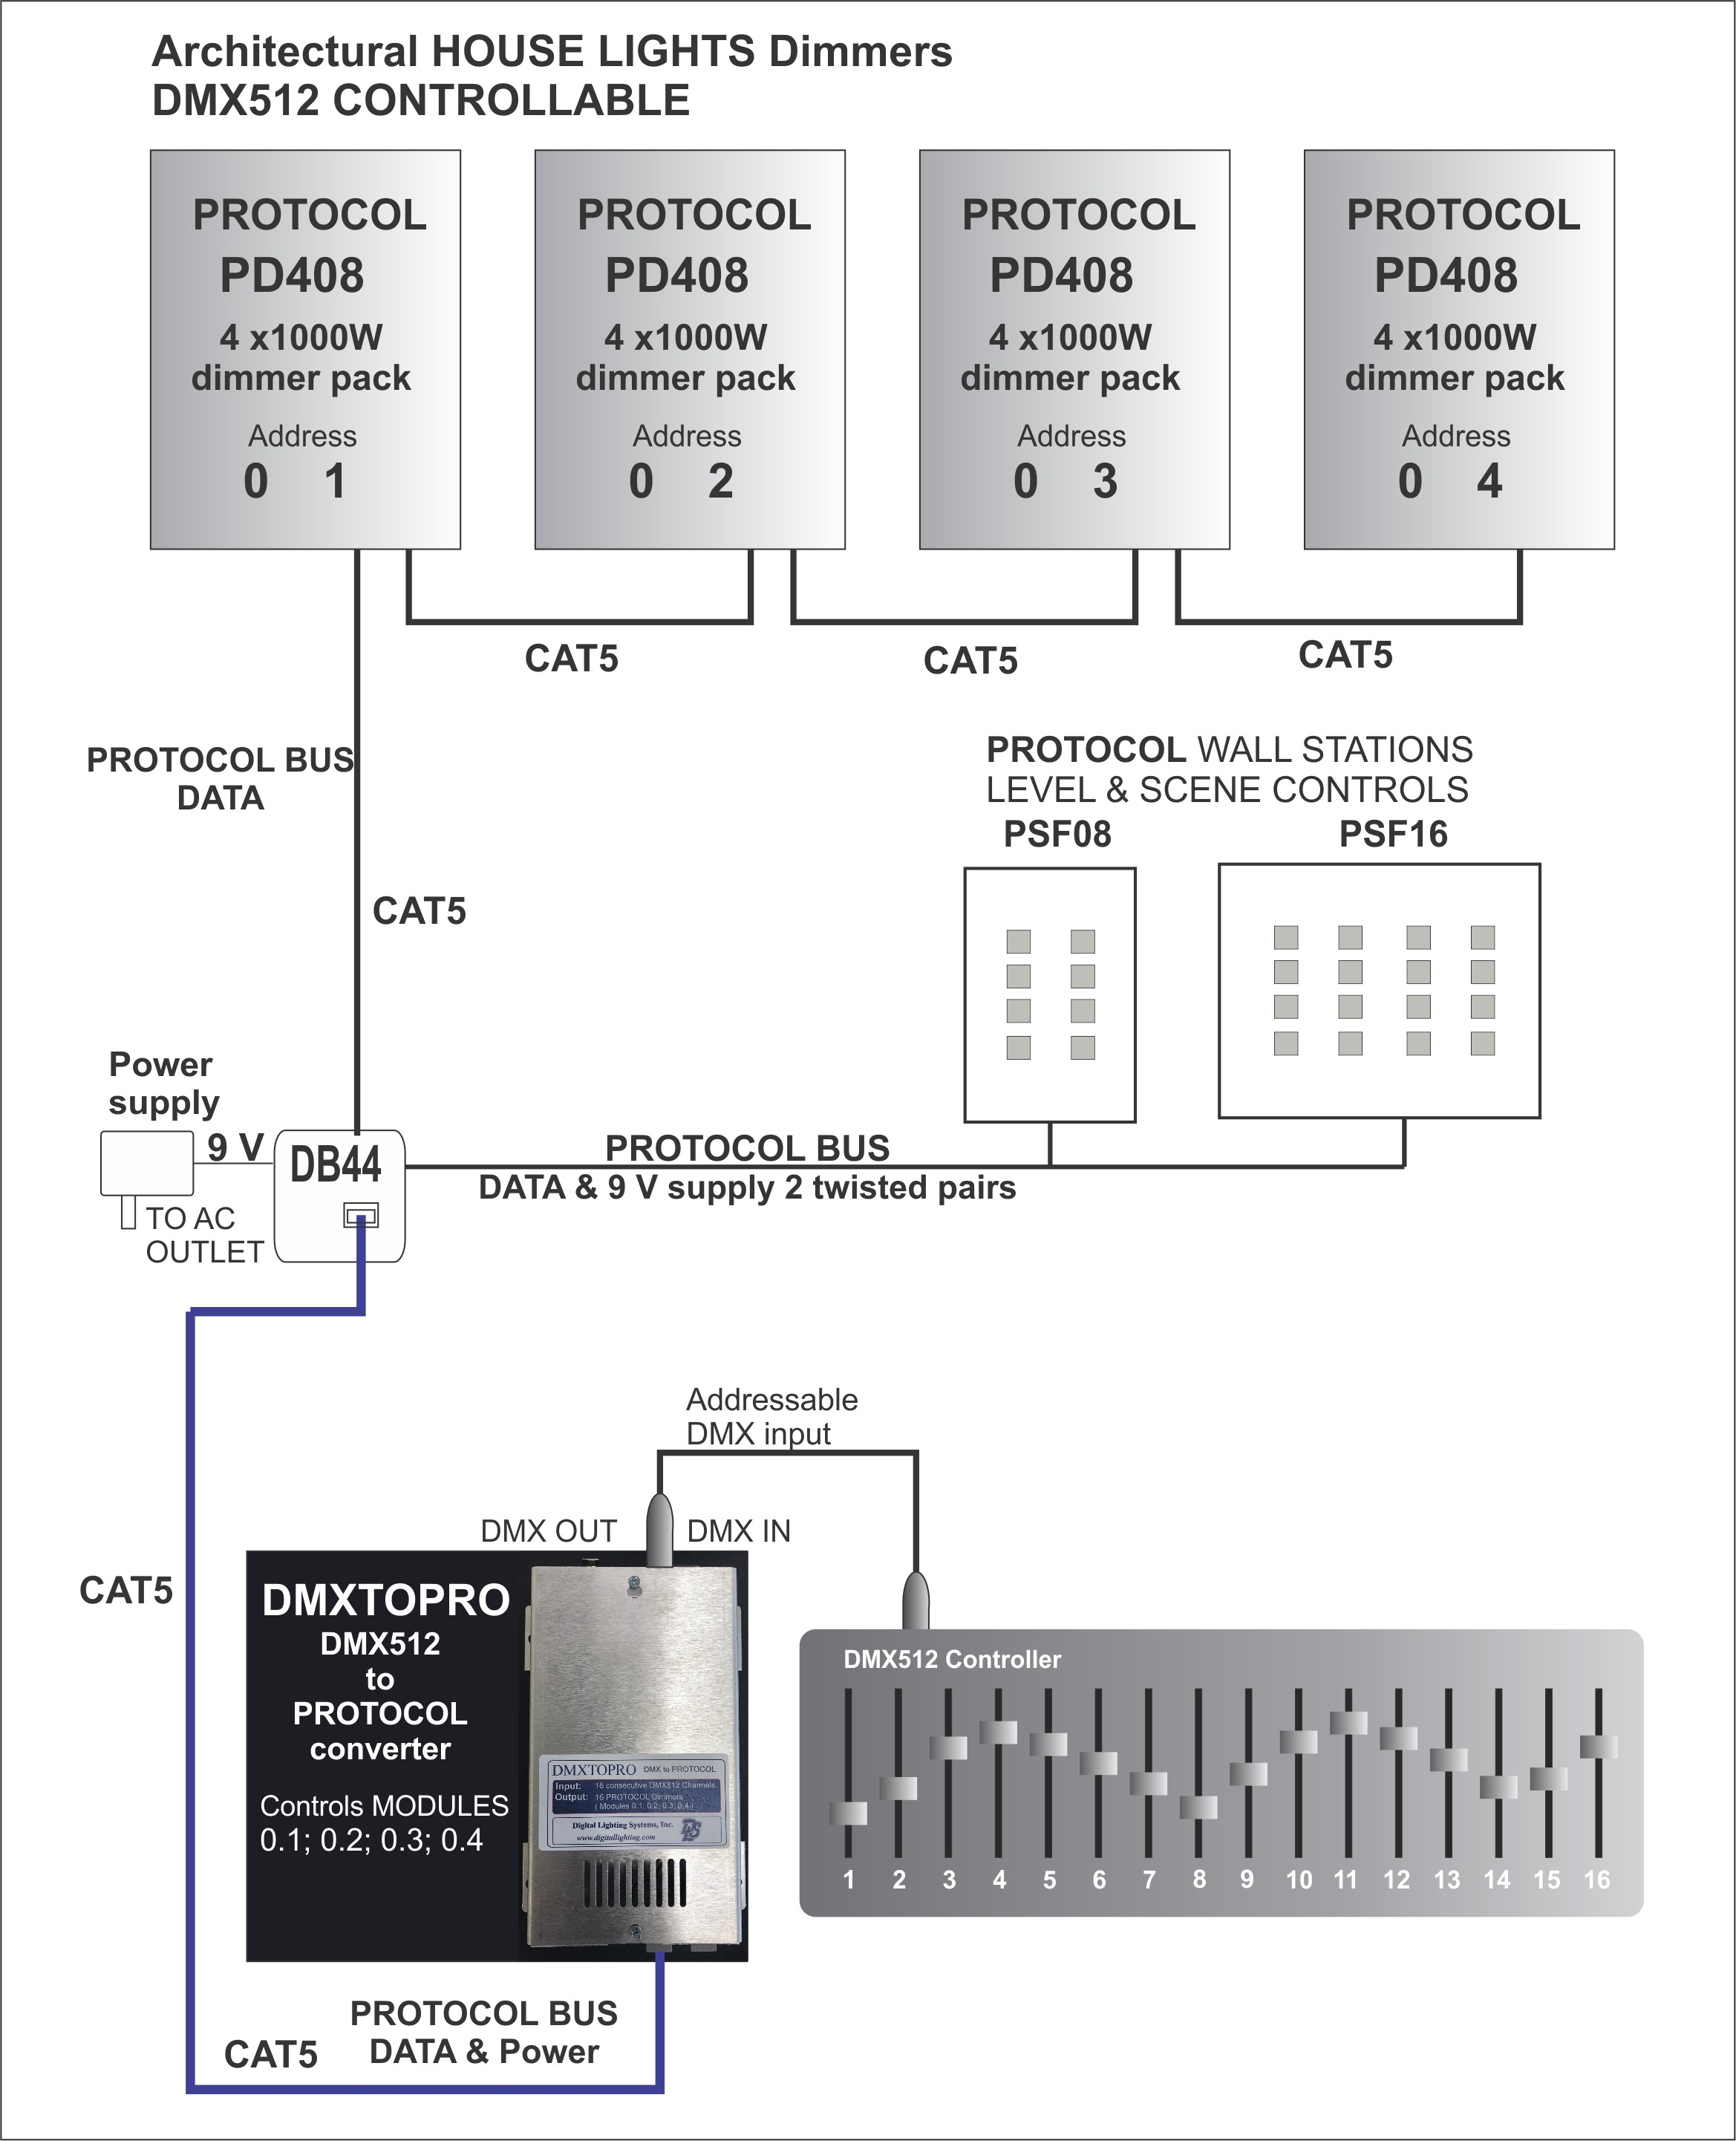 Optional Lighting System Accessories Diagram Of Dmxtopro User Manual